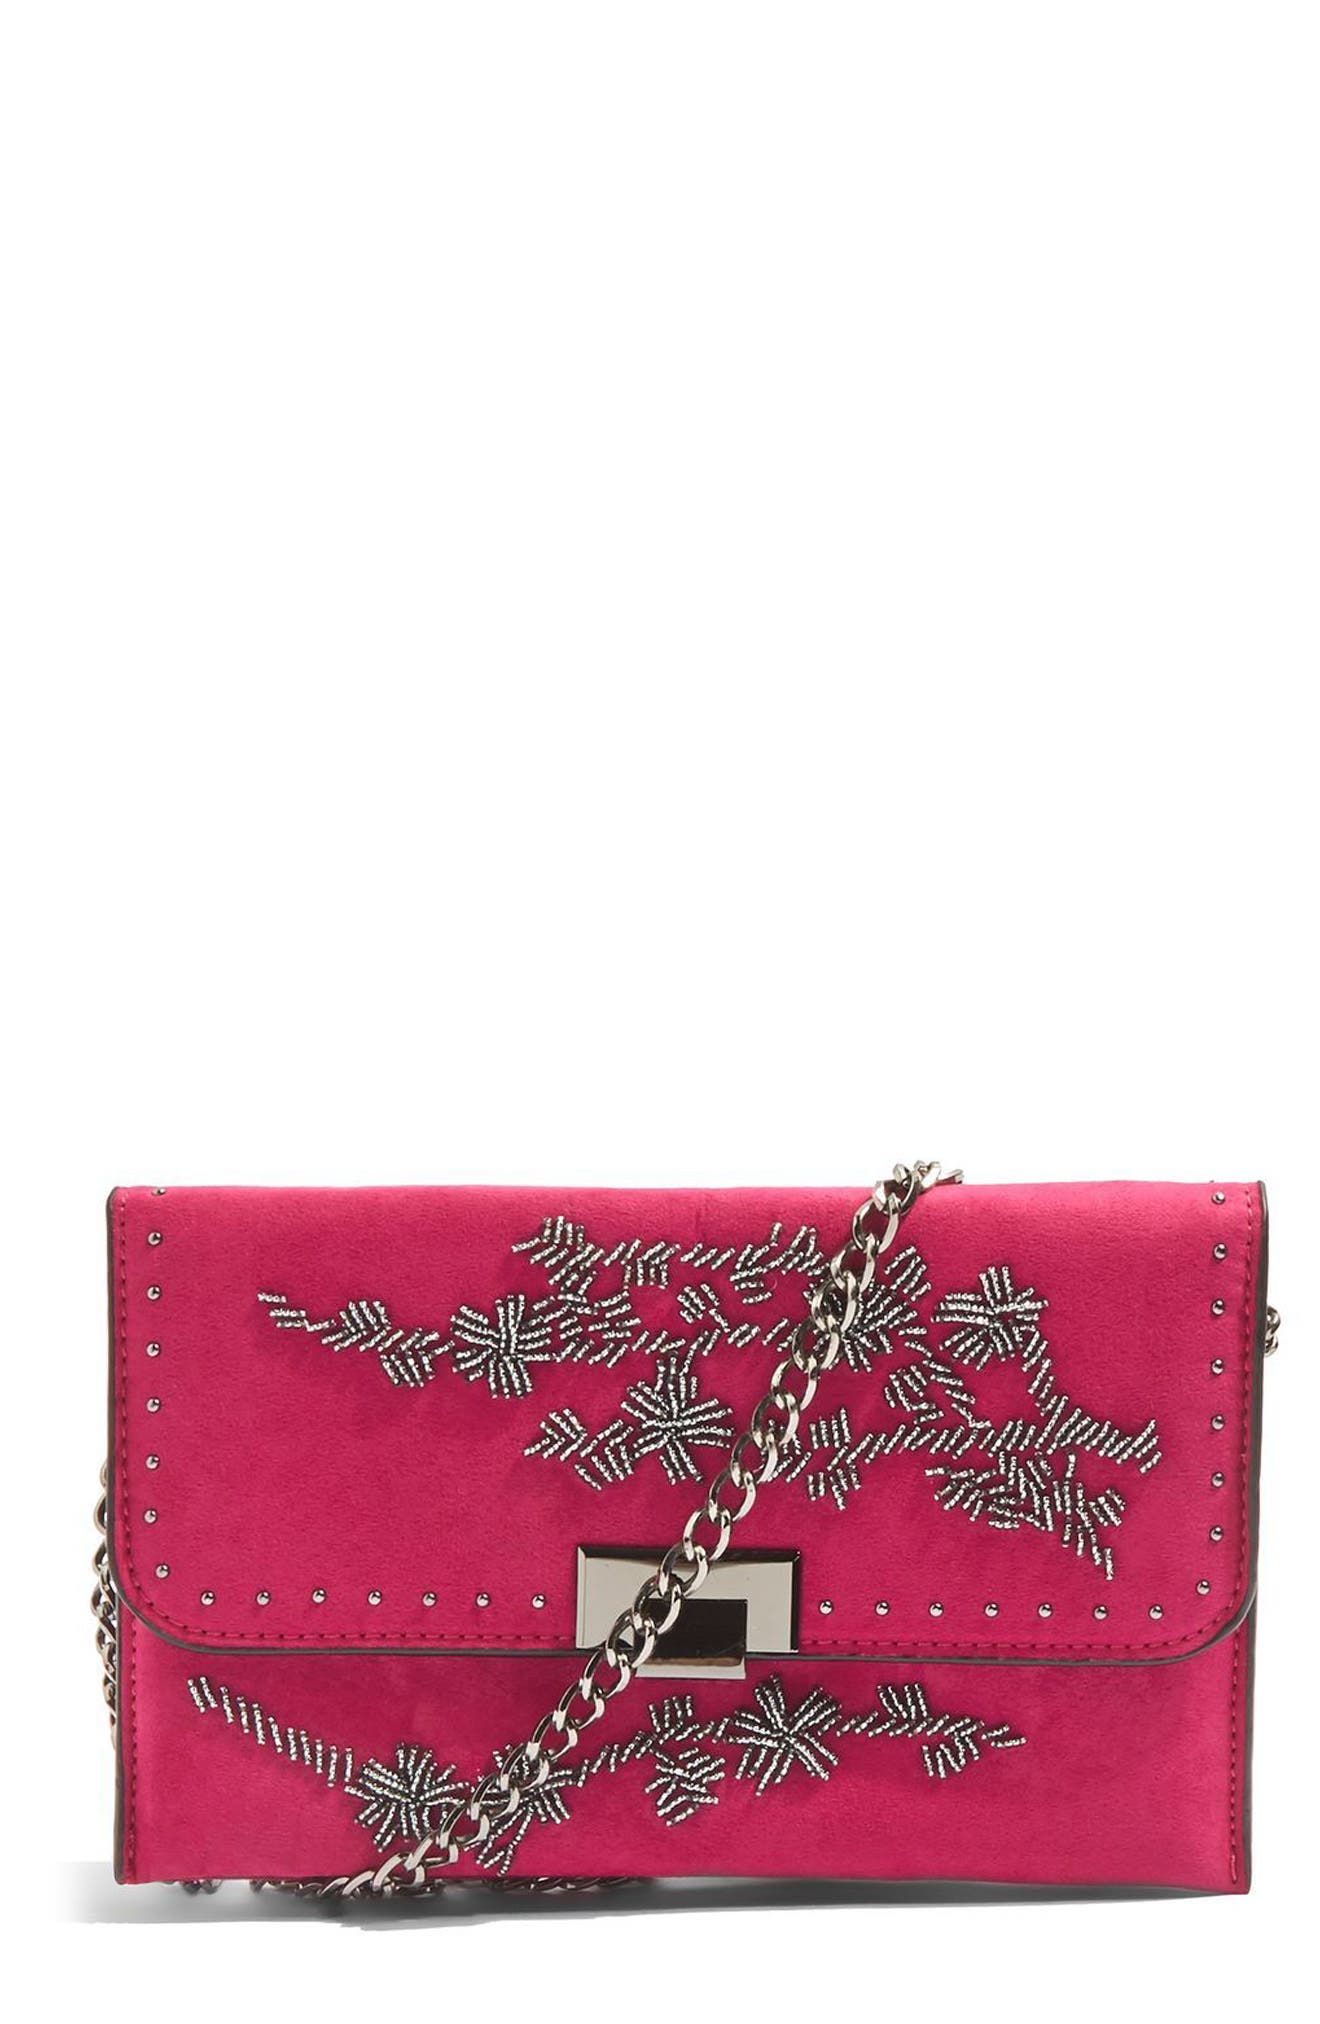 Topshop Floral Beaded Convertible Clutch